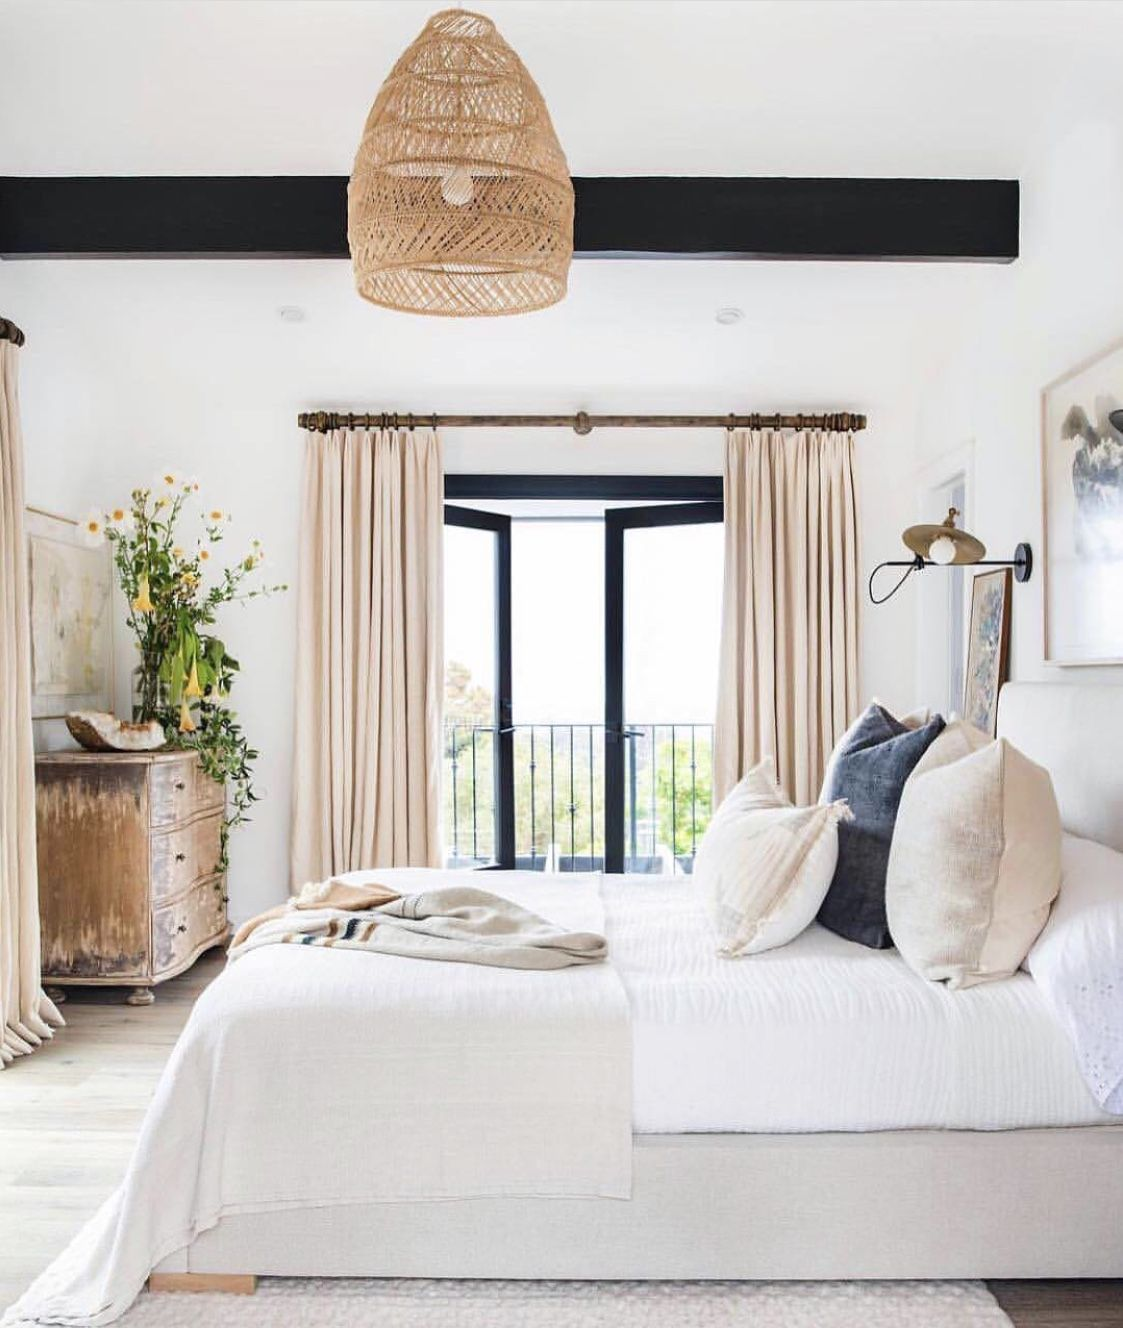 Pin By Bella Silva On Room With A View Light Airy Bedroom Beautiful Bedroom Inspiration Home Decor Bedroom Simple bedroom decoration view